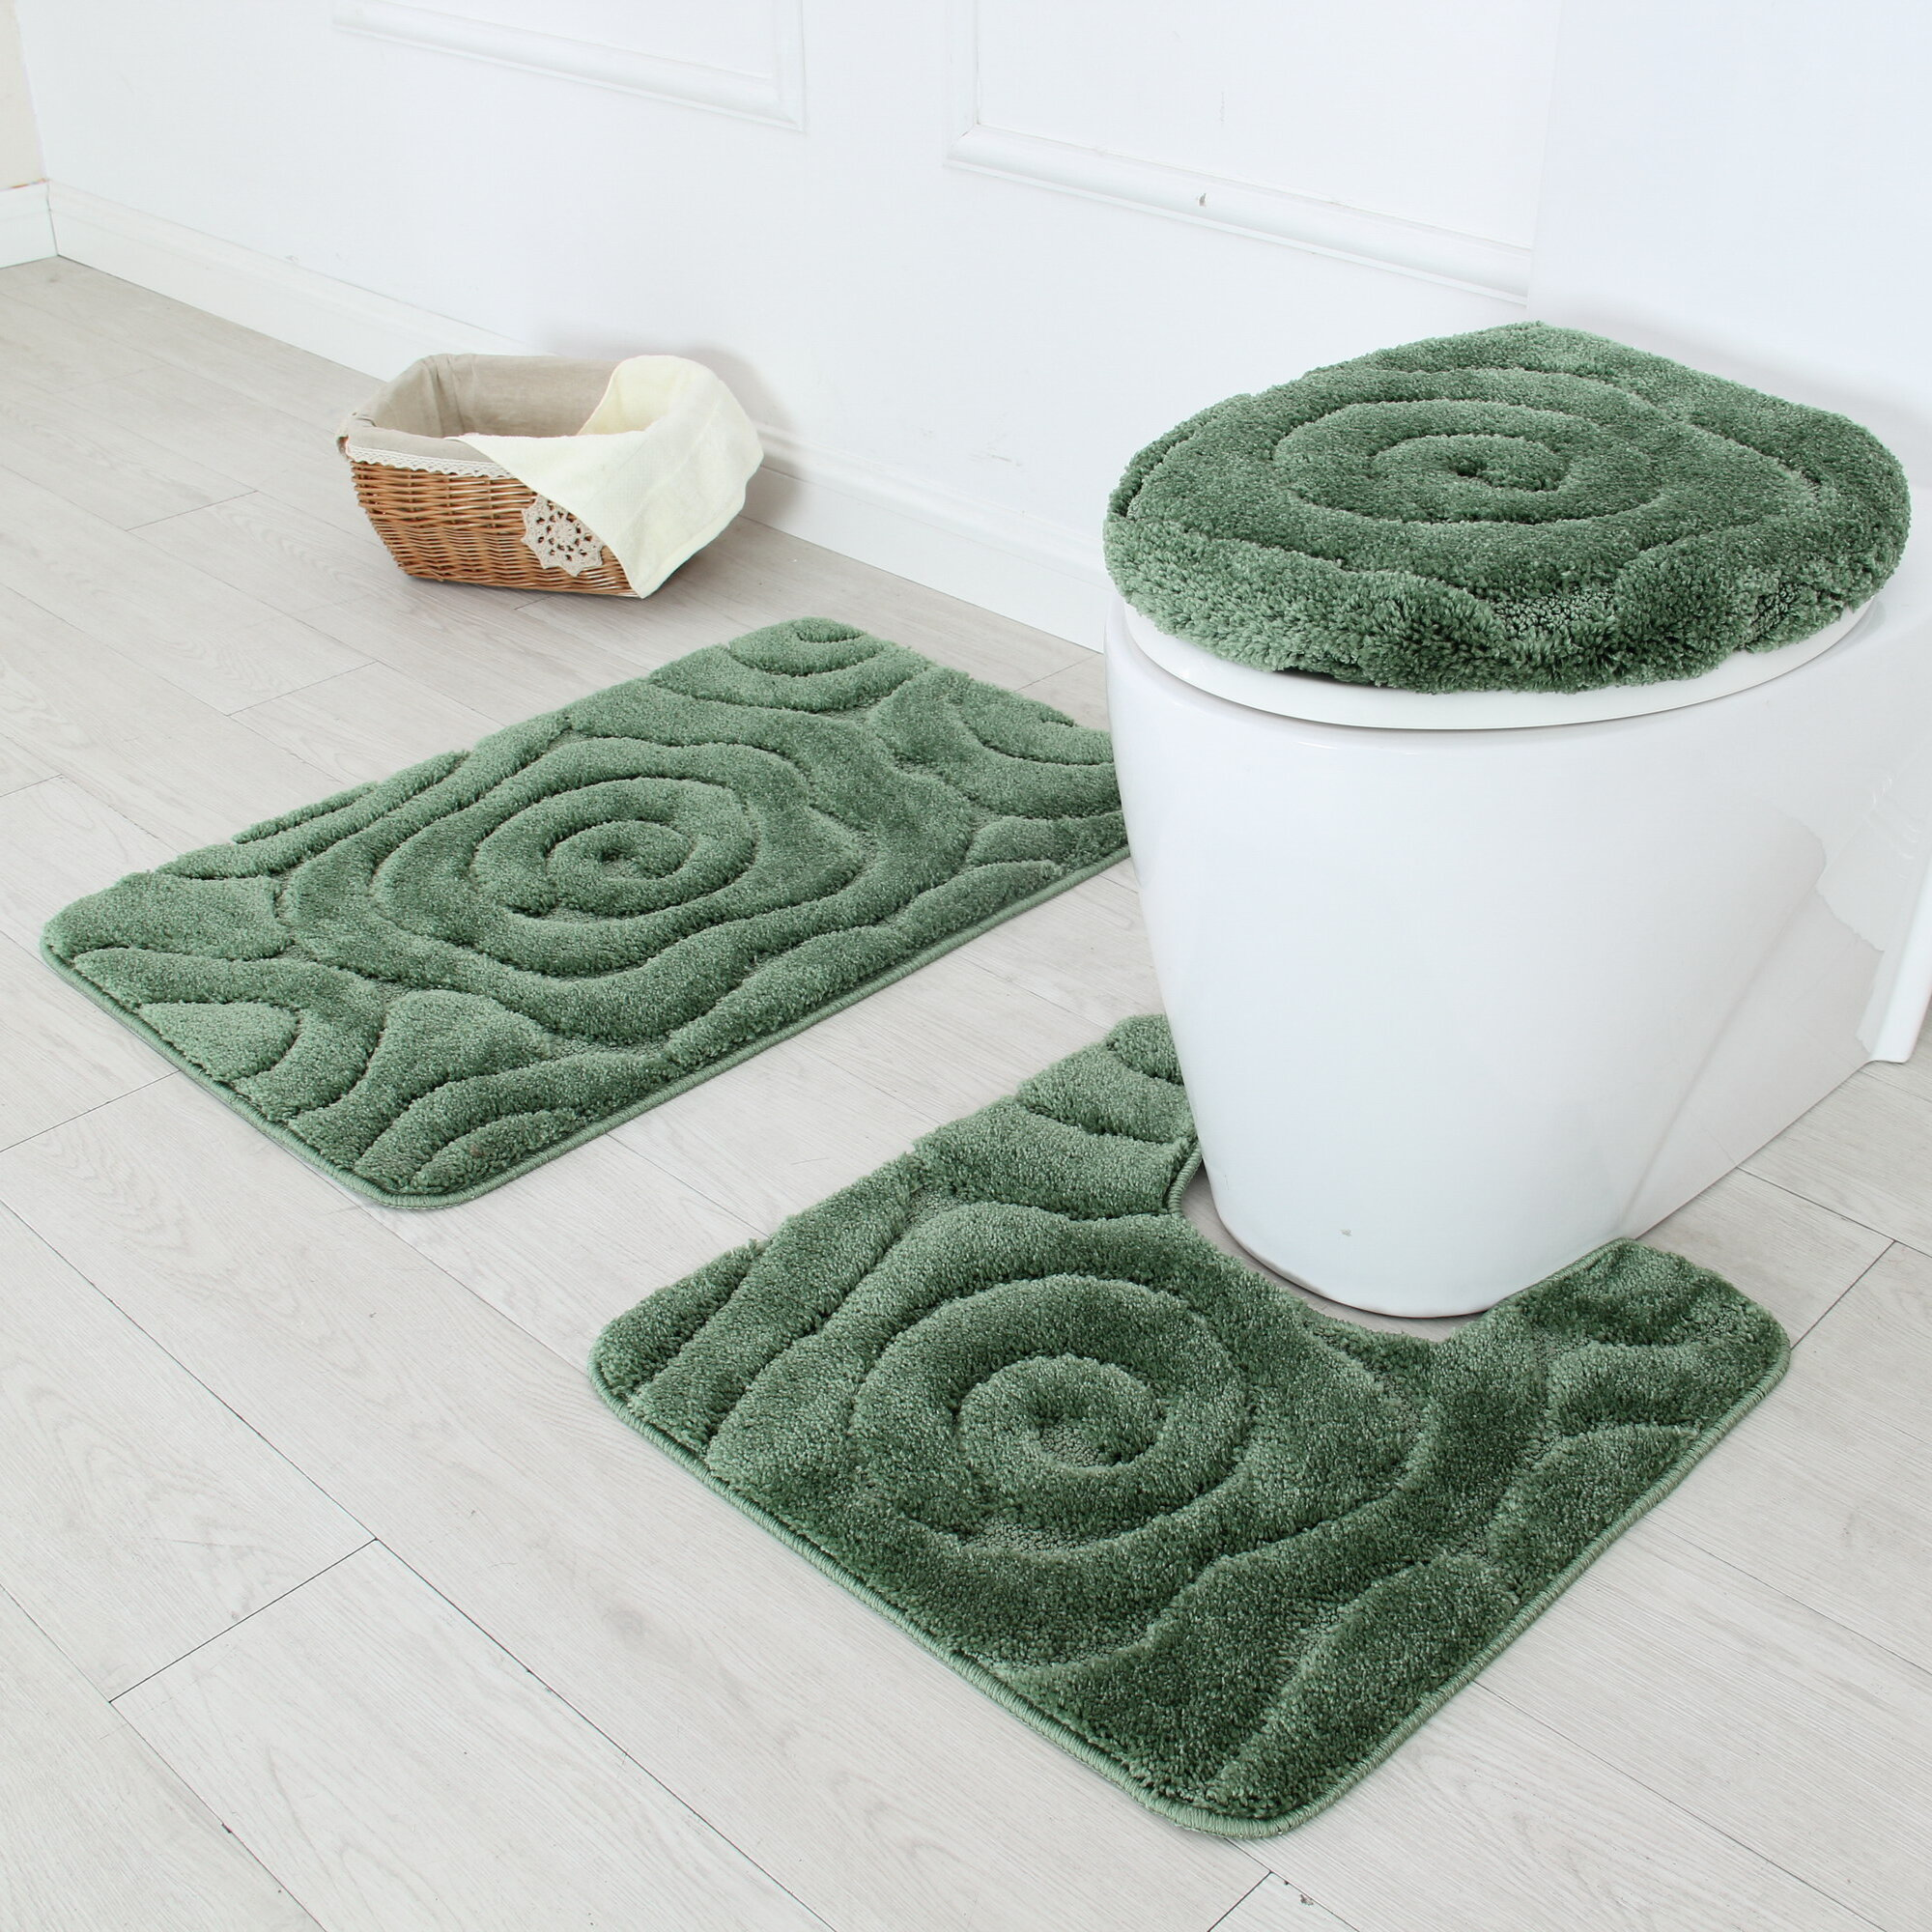 bath free shipping bathroom piece jean overstock hers set product rug today cotton his pierre bedding